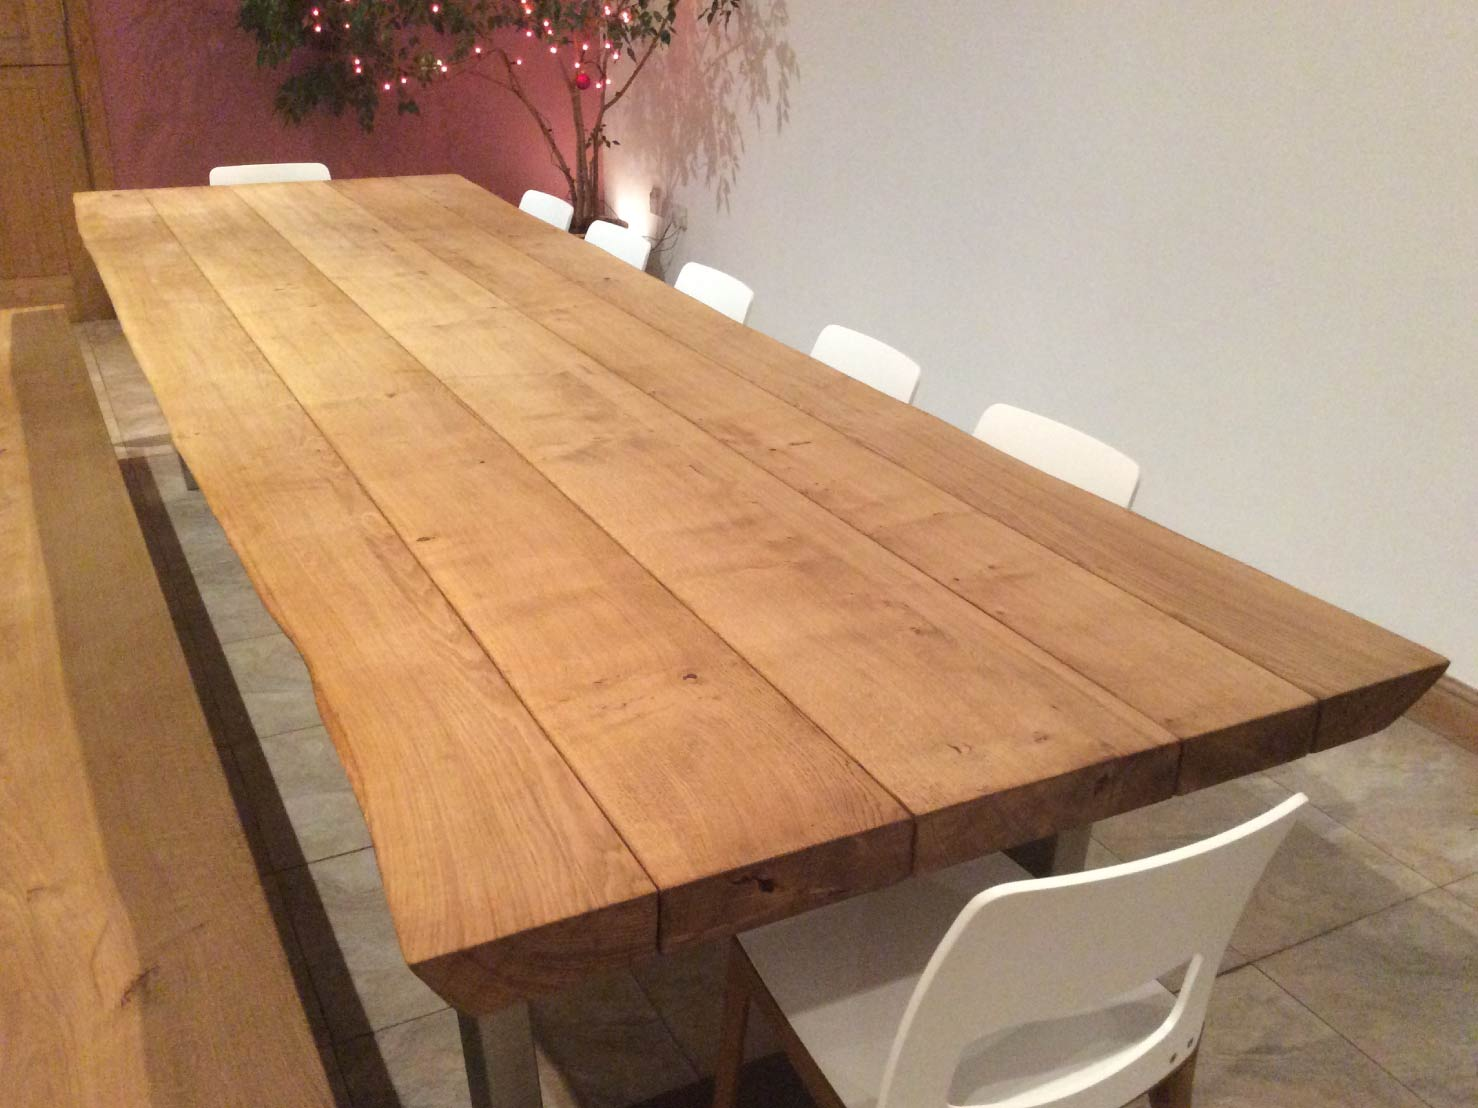 oak-dining-table-sets-from-abacus-tables-komodo-3.3-with-matching-bench-&-chairs-project-454